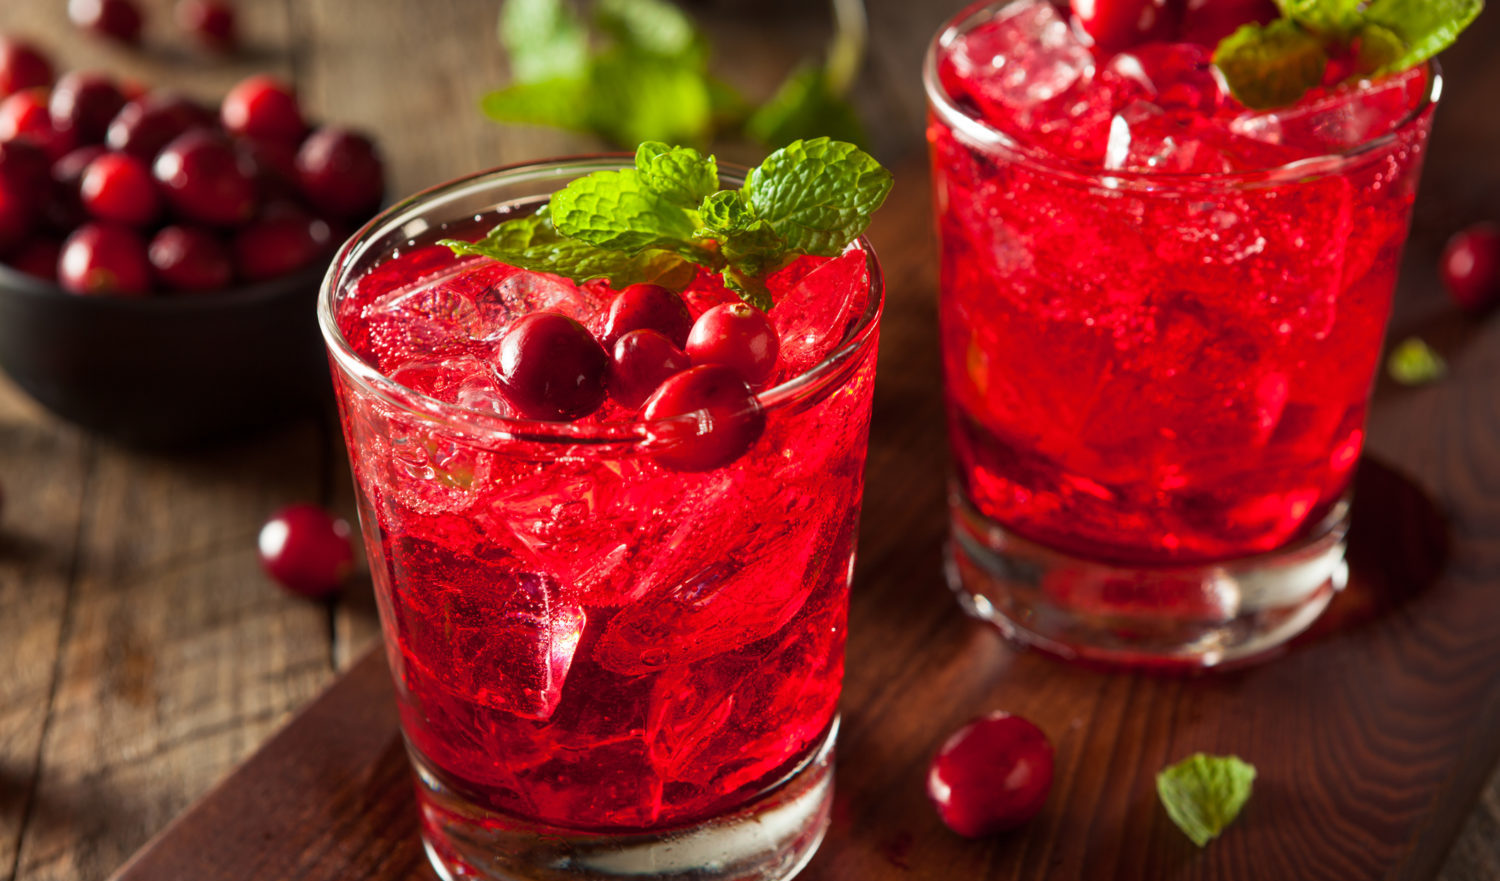 Homemade Boozy Cranberry Cocktail with Vodka and Mint